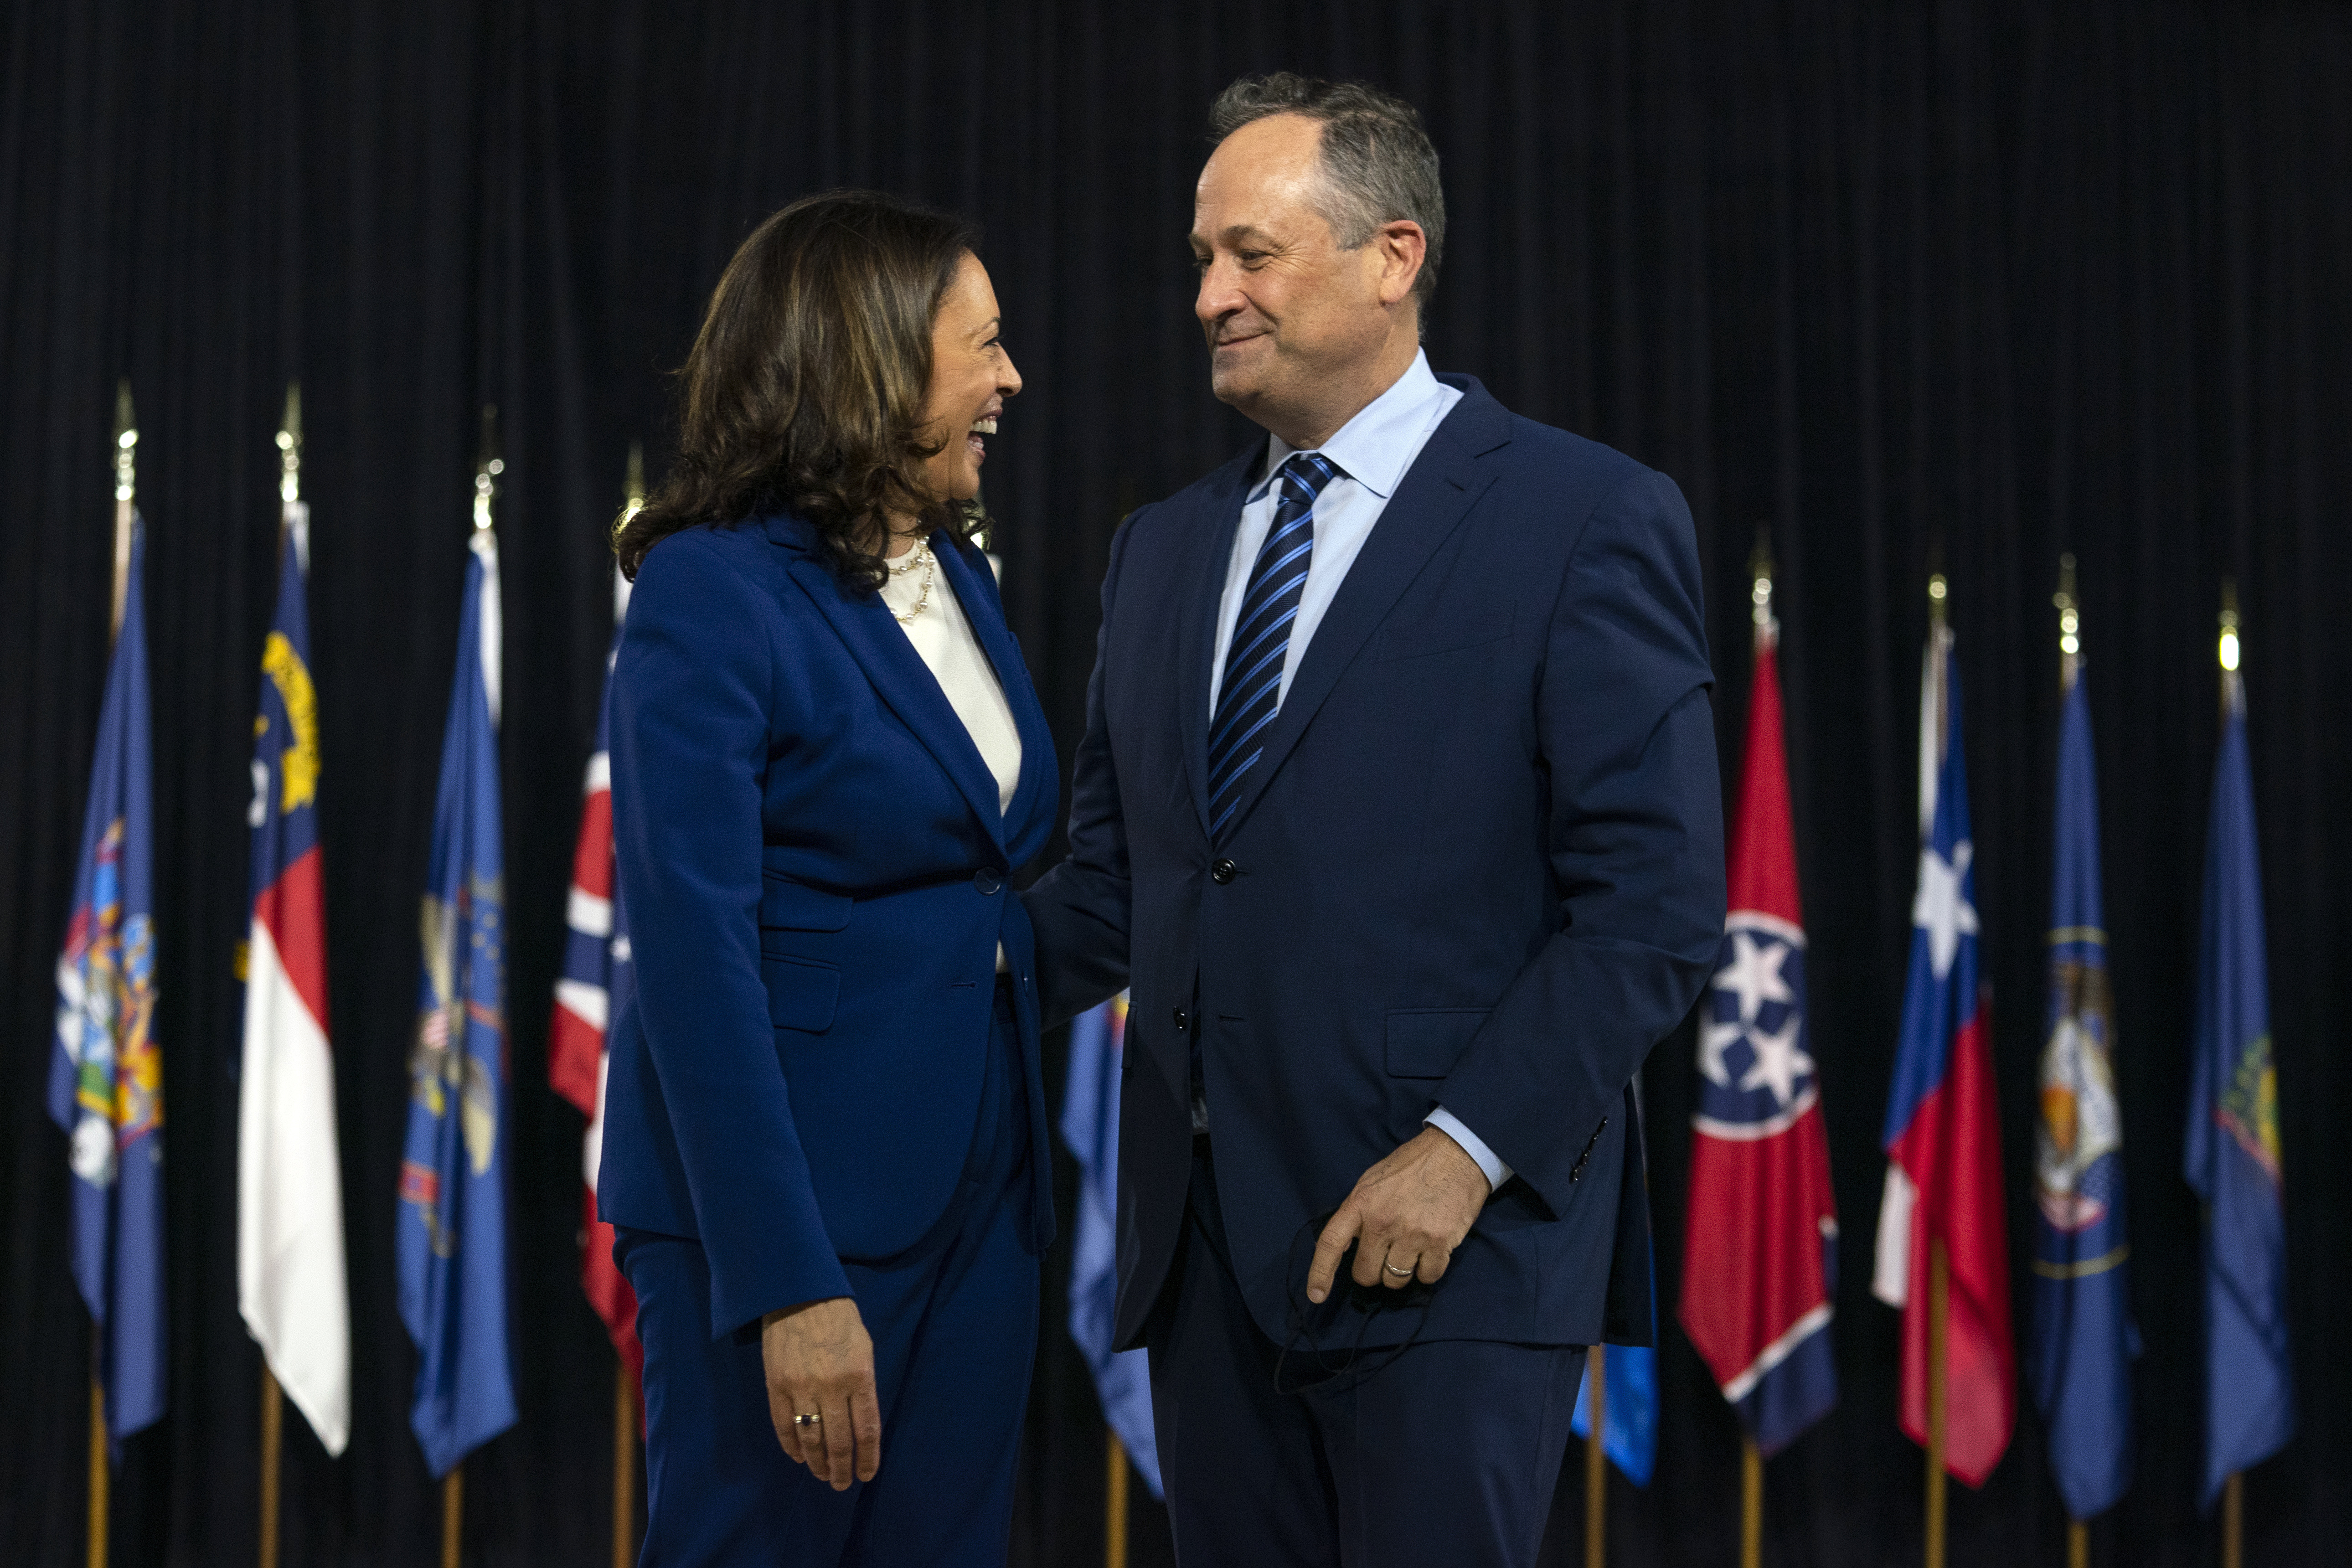 America Might Be Ready For Kamala Harris S Husband To Be Second Gentleman The Washington Post